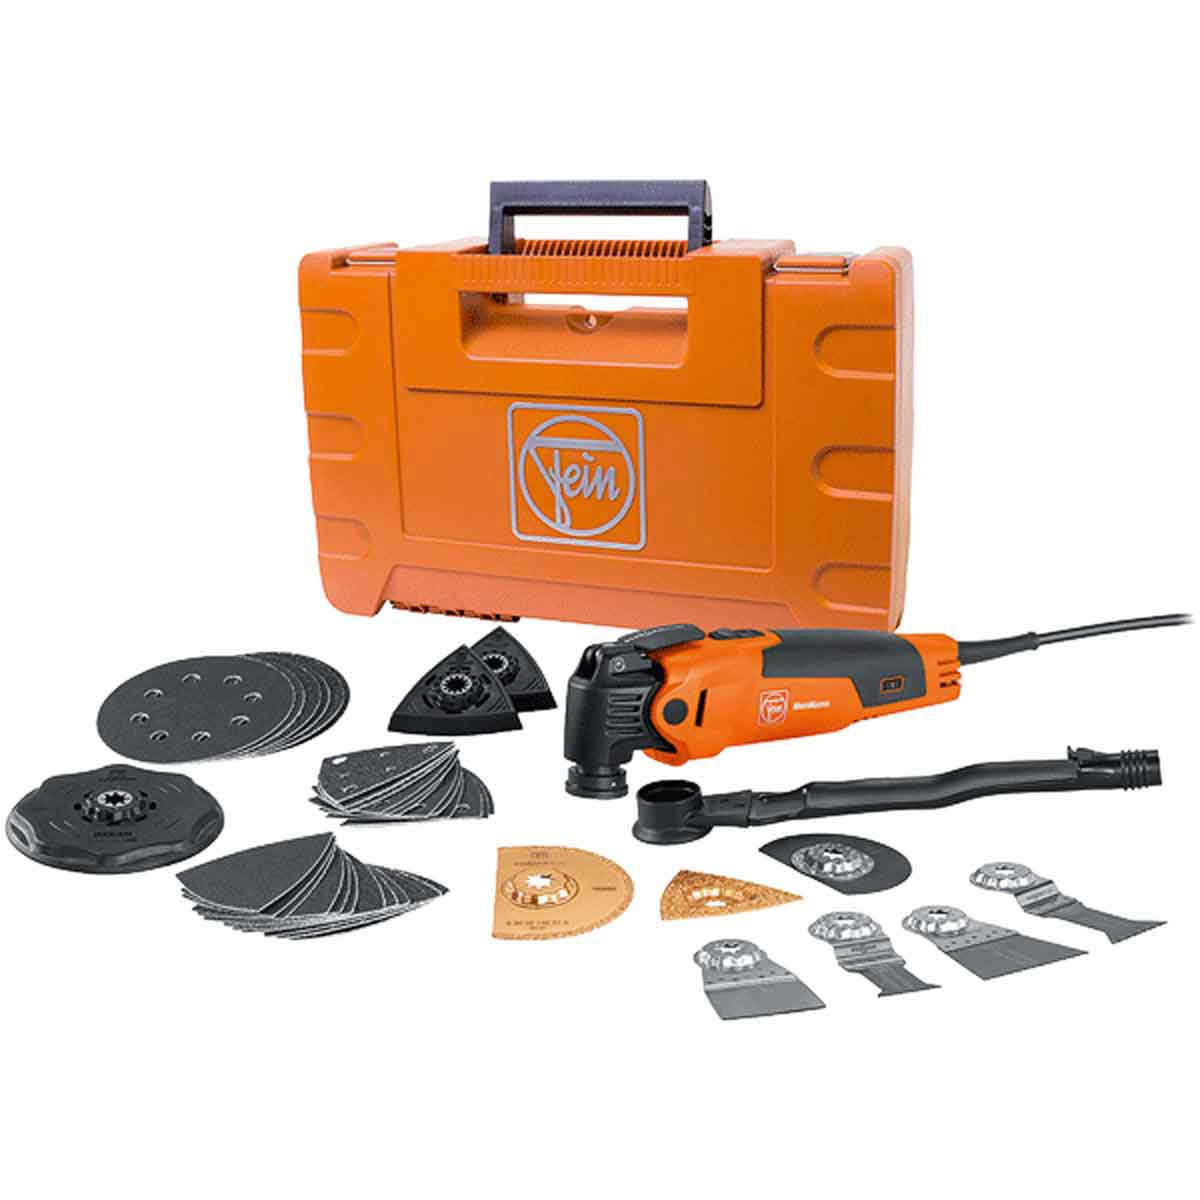 Fein MultiMaster Kit with Case